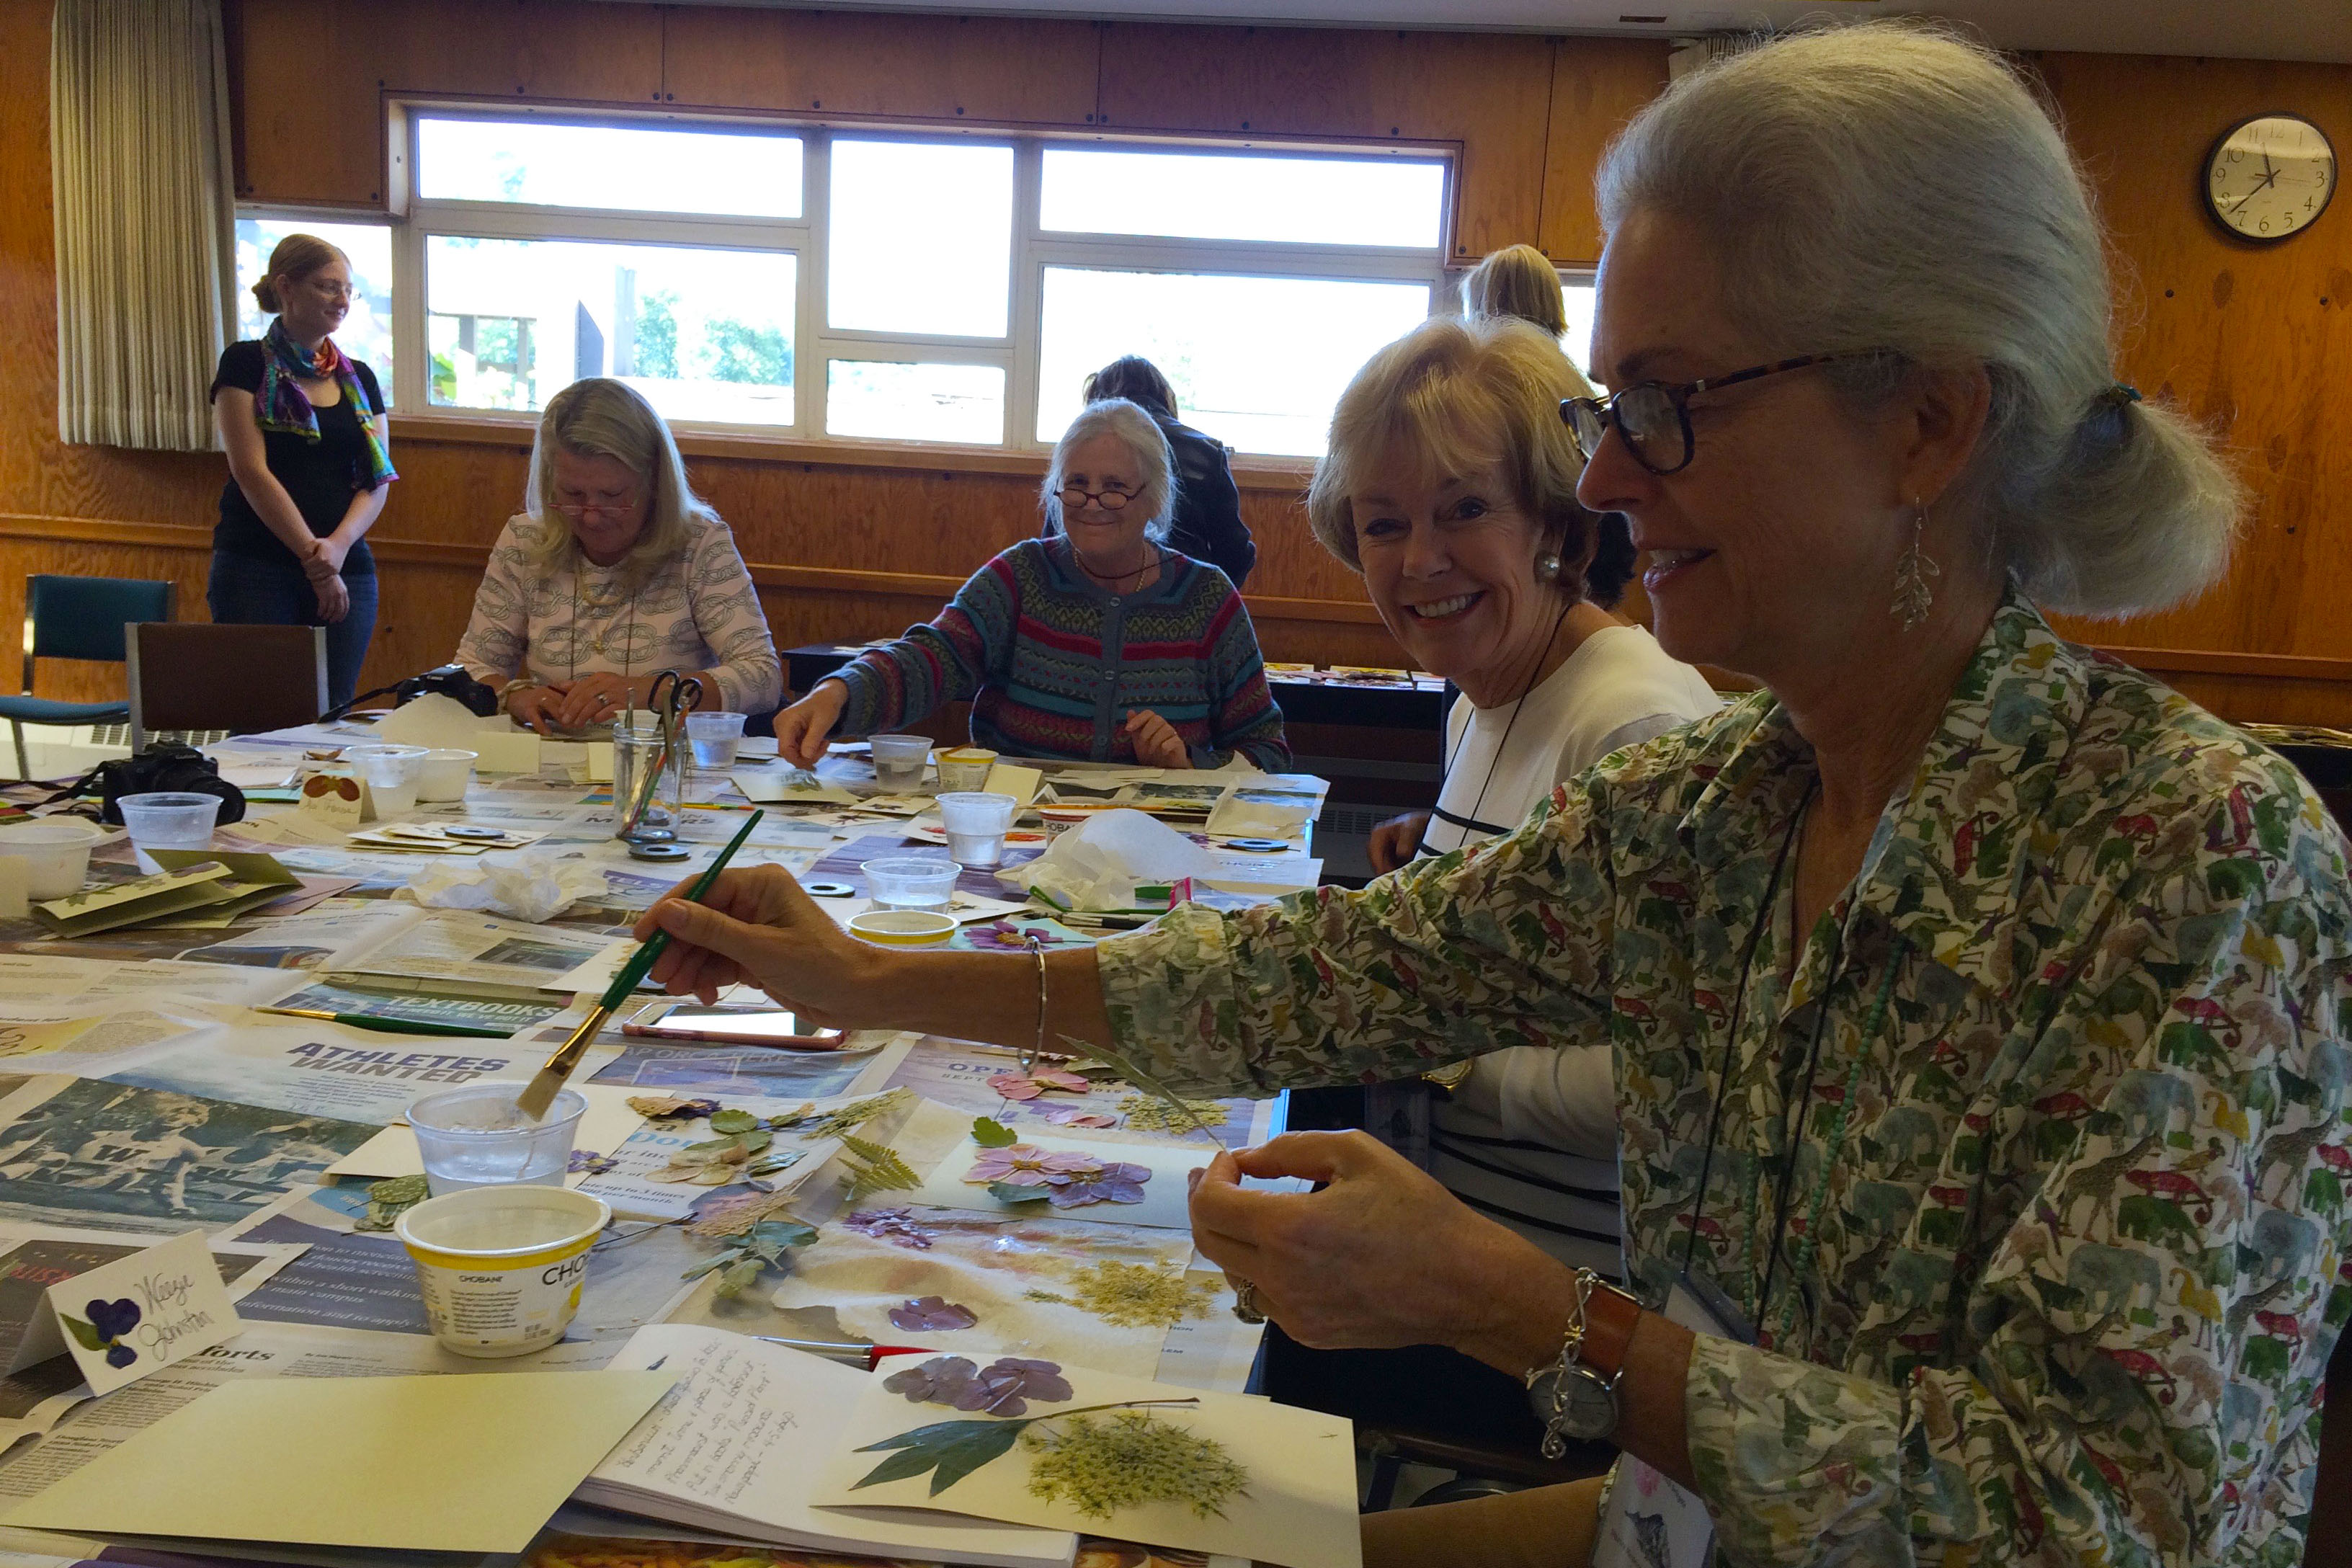 Herbarium Workshop: mounting herbarium specimens and making pressed flower note cards